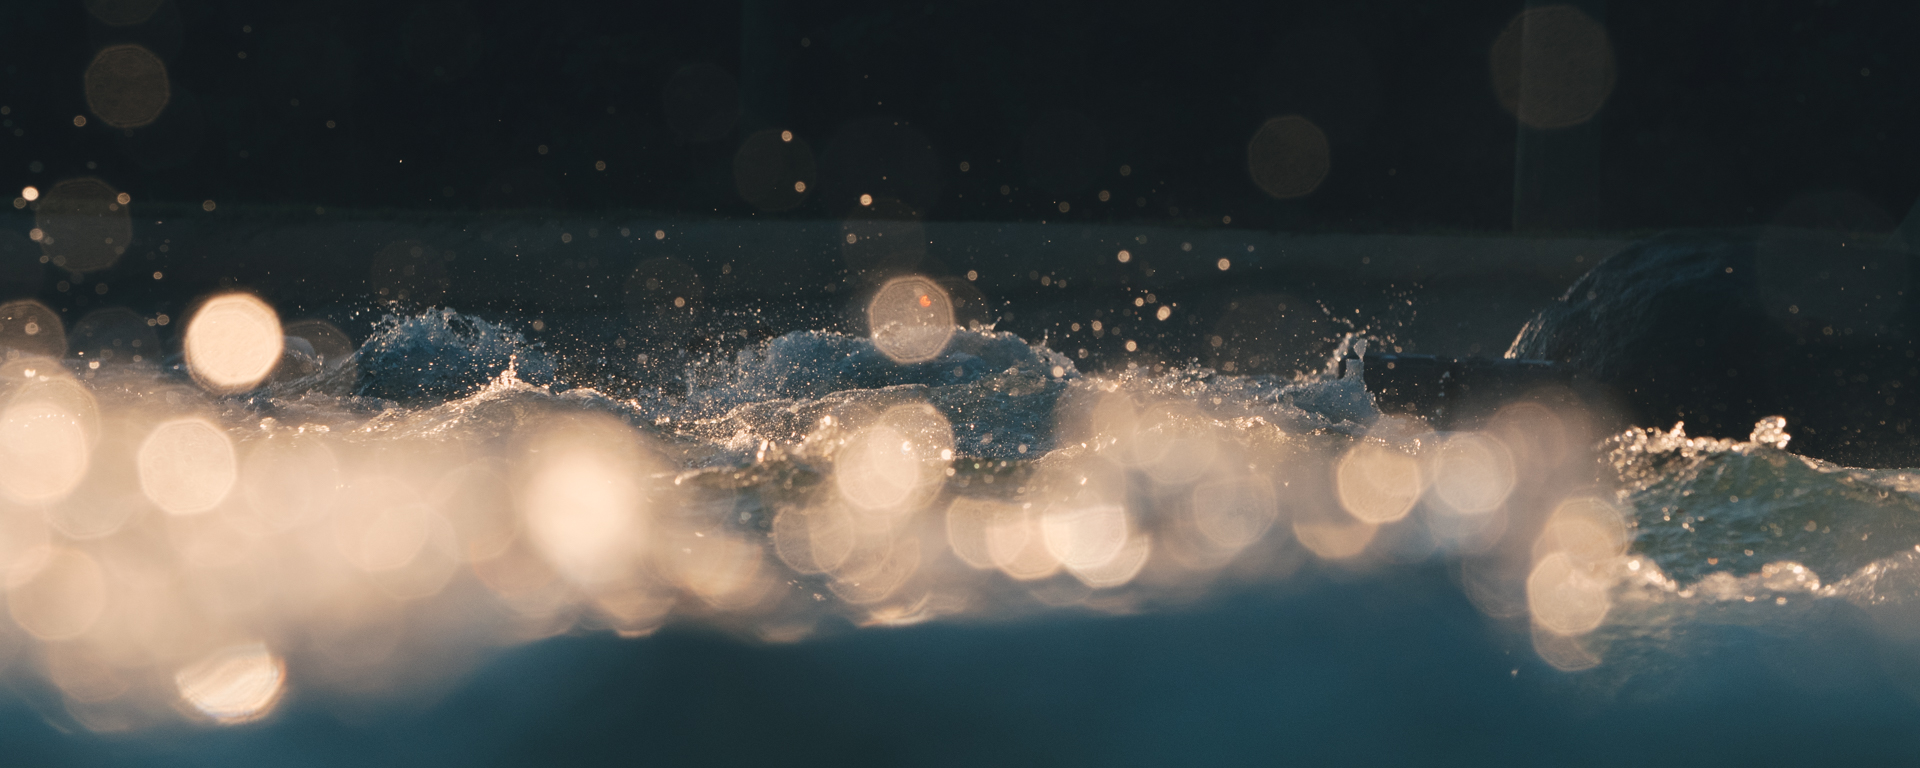 Light Splash-1.jpg